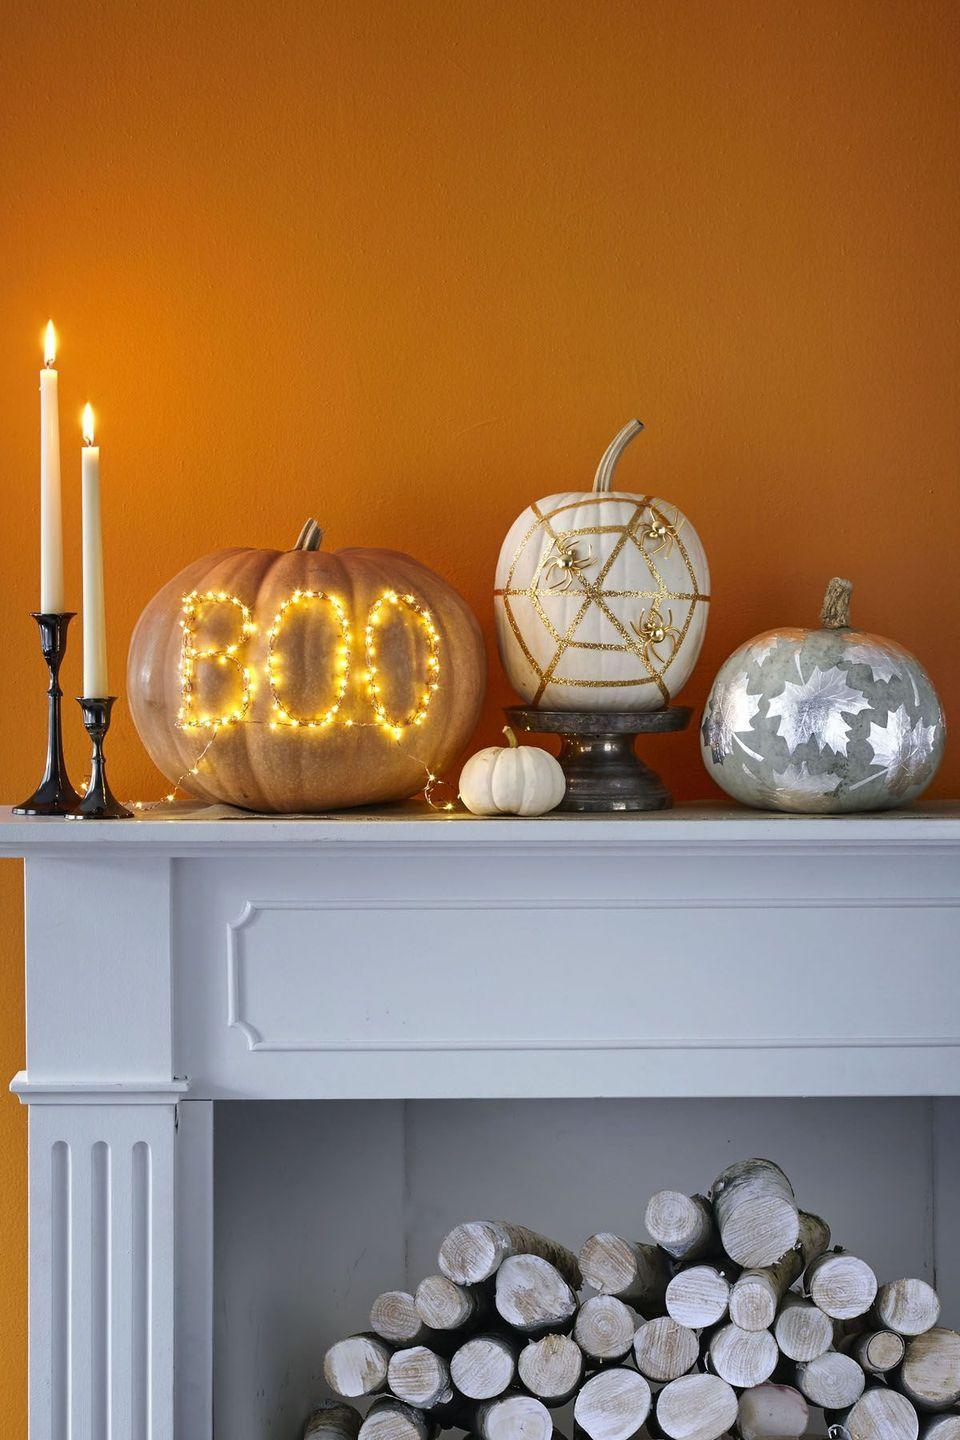 """<p>Use highlighter to spell out BOO on a pumpkin. Outline letters with straight pins, leaving about a ½-inch of pin sticking out. Wrap LED copper string lights around pins; repeat two to three times. Tuck battery pack behind the pumpkin. </p><p><a class=""""link rapid-noclick-resp"""" href=""""https://www.amazon.com/Ariceleo-Operated-Christmas-Centerpiece-Decoration/dp/B07S3R6MKJ?tag=syn-yahoo-20&ascsubtag=%5Bartid%7C10070.g.331%5Bsrc%7Cyahoo-us"""" rel=""""nofollow noopener"""" target=""""_blank"""" data-ylk=""""slk:SHOP STRING LIGHTS"""">SHOP STRING LIGHTS</a></p>"""